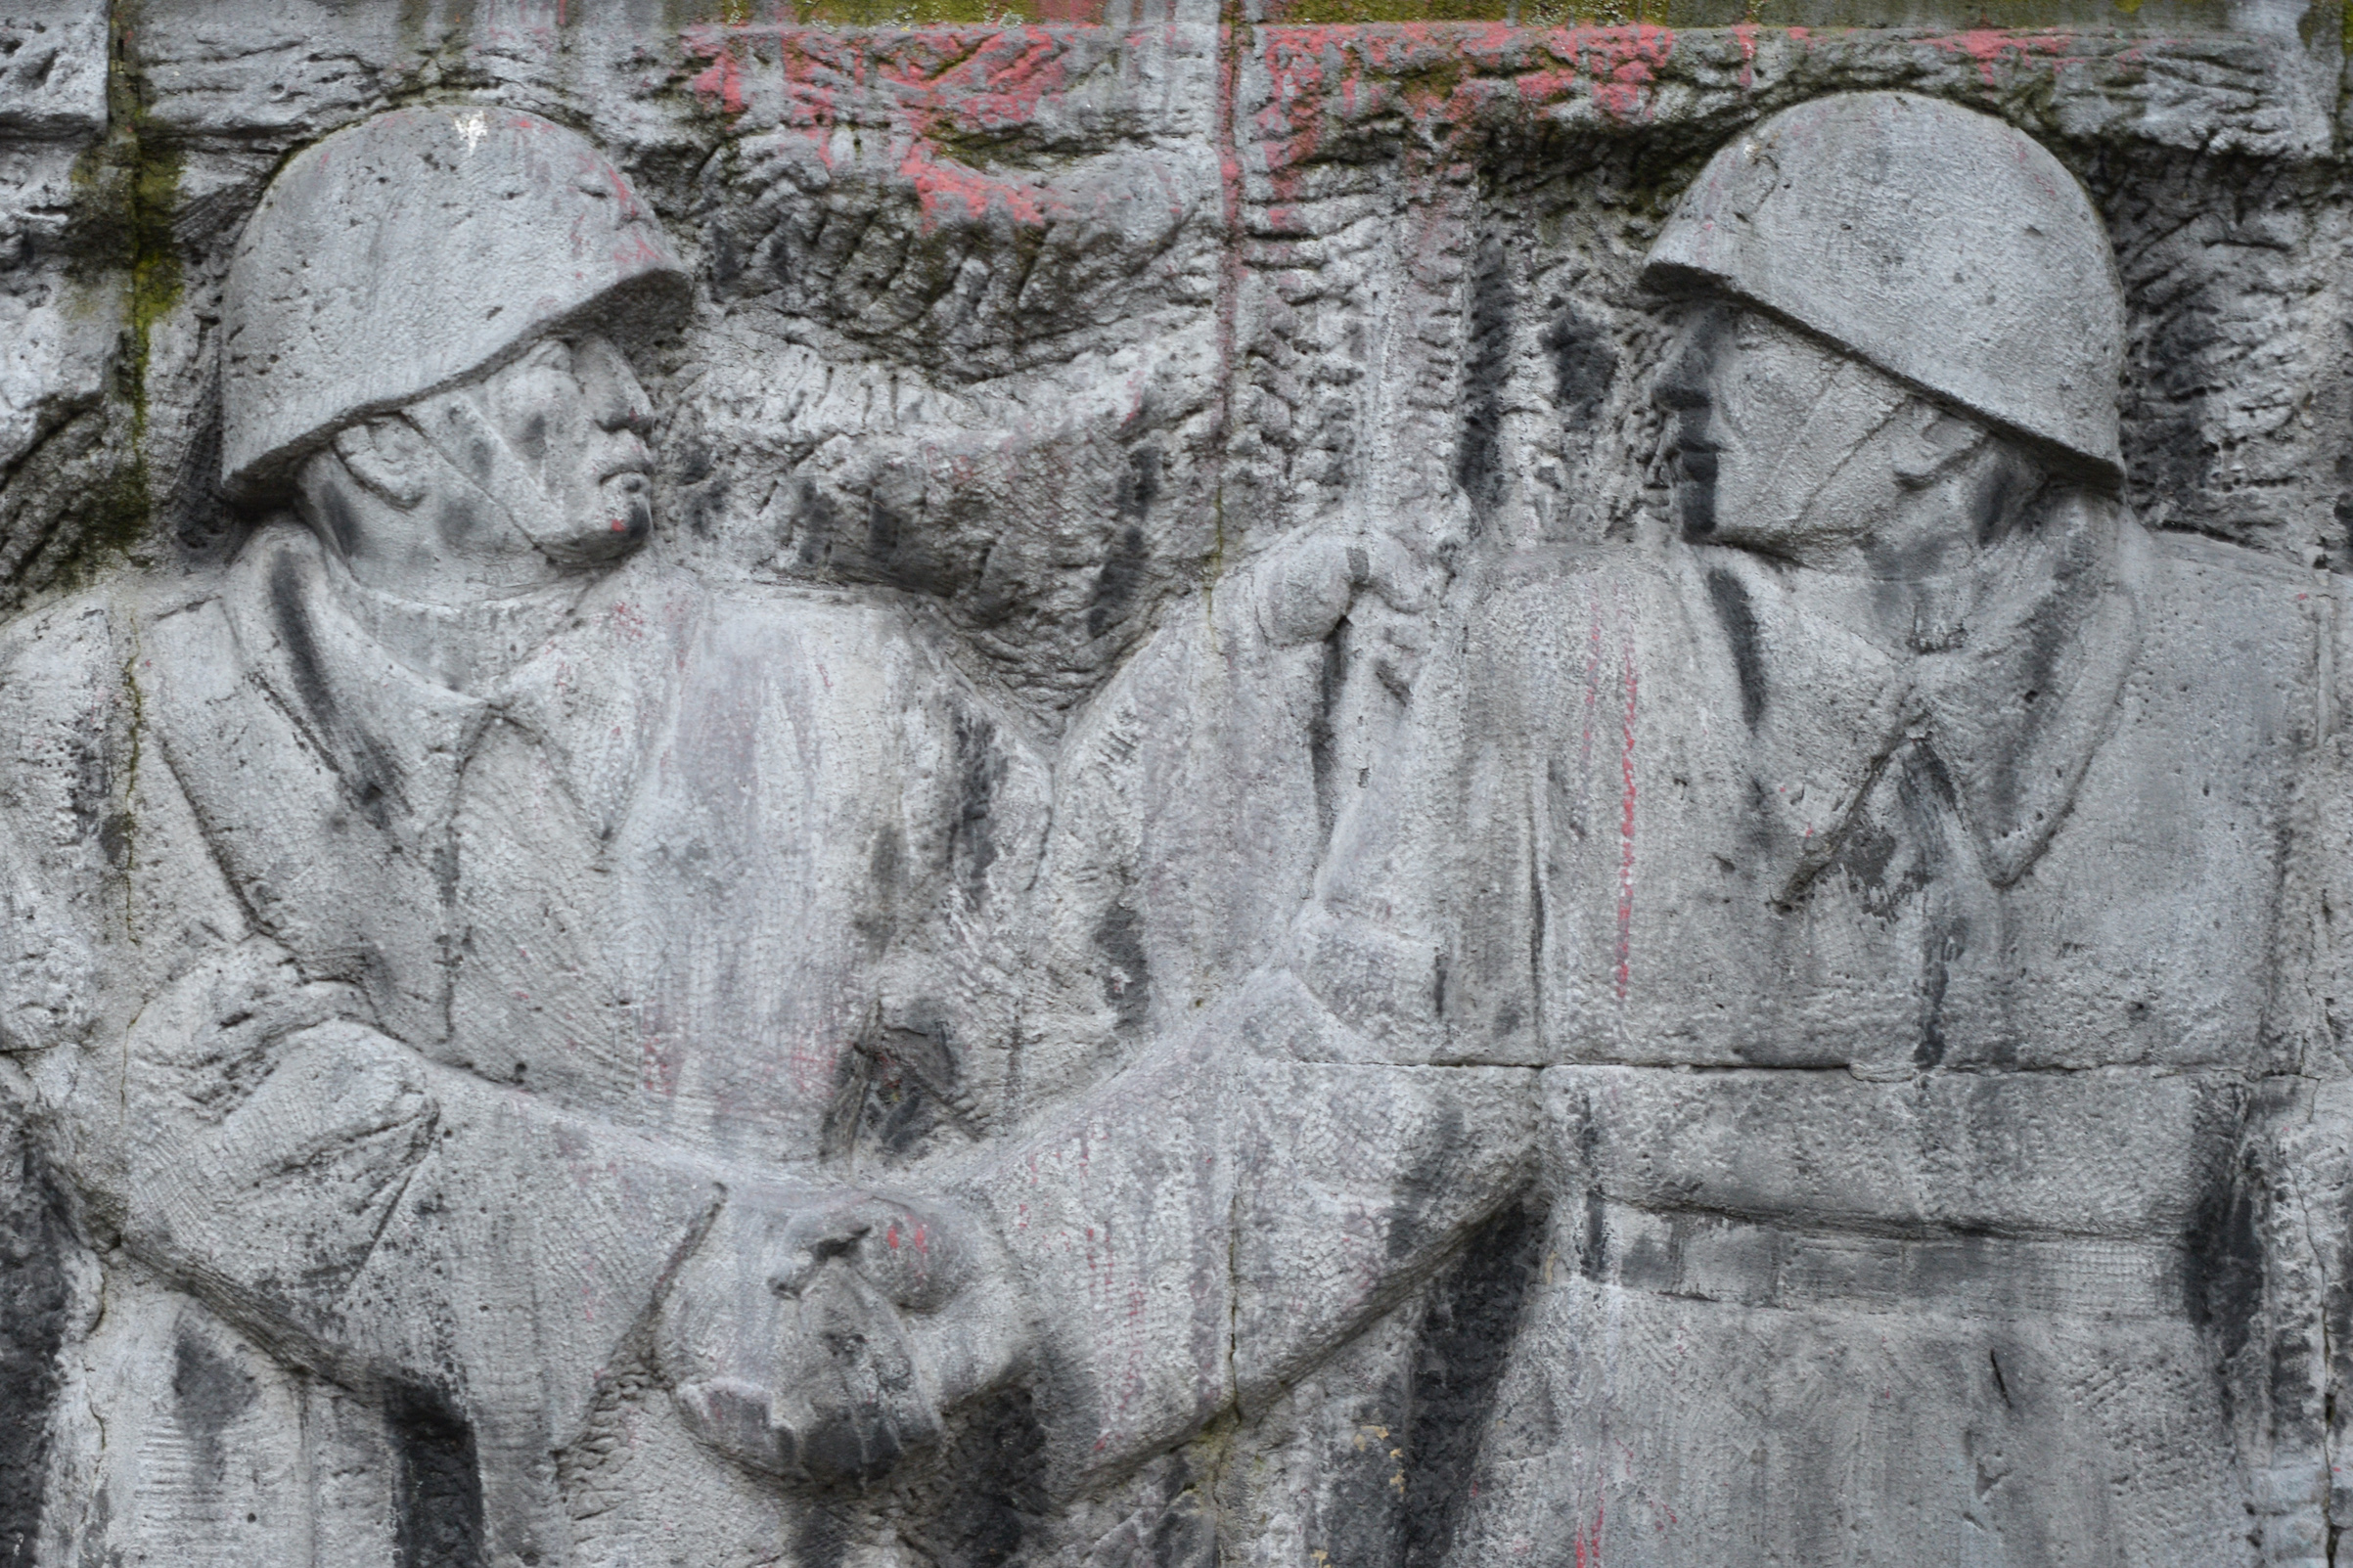 Details of a monument to the Red Army built in 1950, in Rzeszow, Poland, seen Dec. 30, 2019.